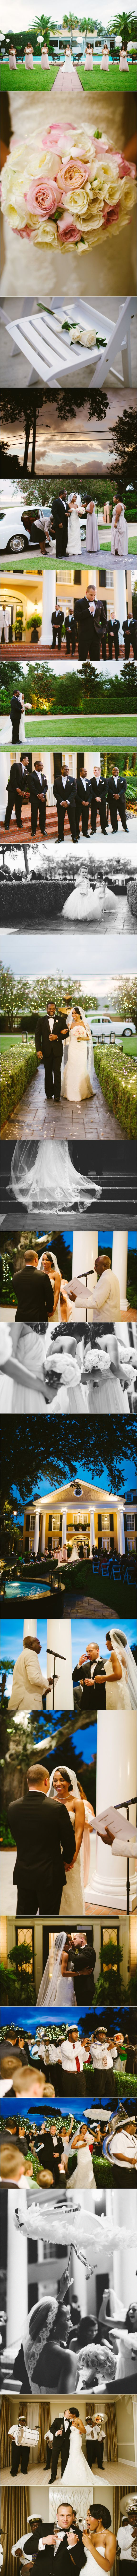 New Orleans Wedding, Southern Oaks Plantation - Brittany and BrandonDark Roux Photography